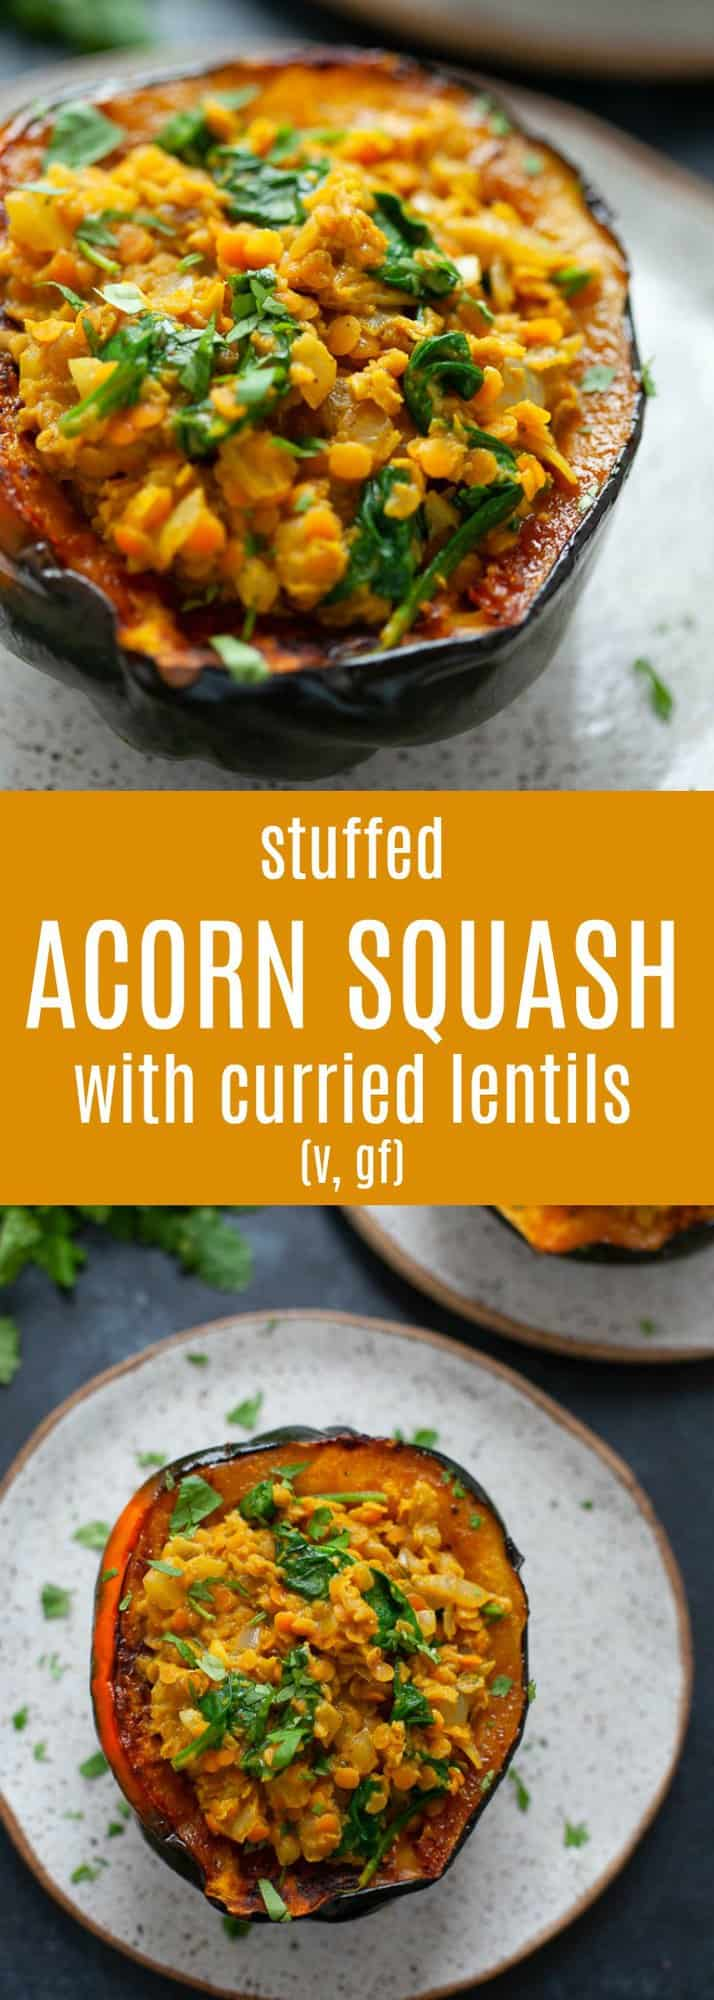 Packed with warming, cozy spices, this stuffed acorn squash with curried lentils is a perfect dinner for the chilly fall season. #acornsquash #vegan #glutenfree #curry #lentils